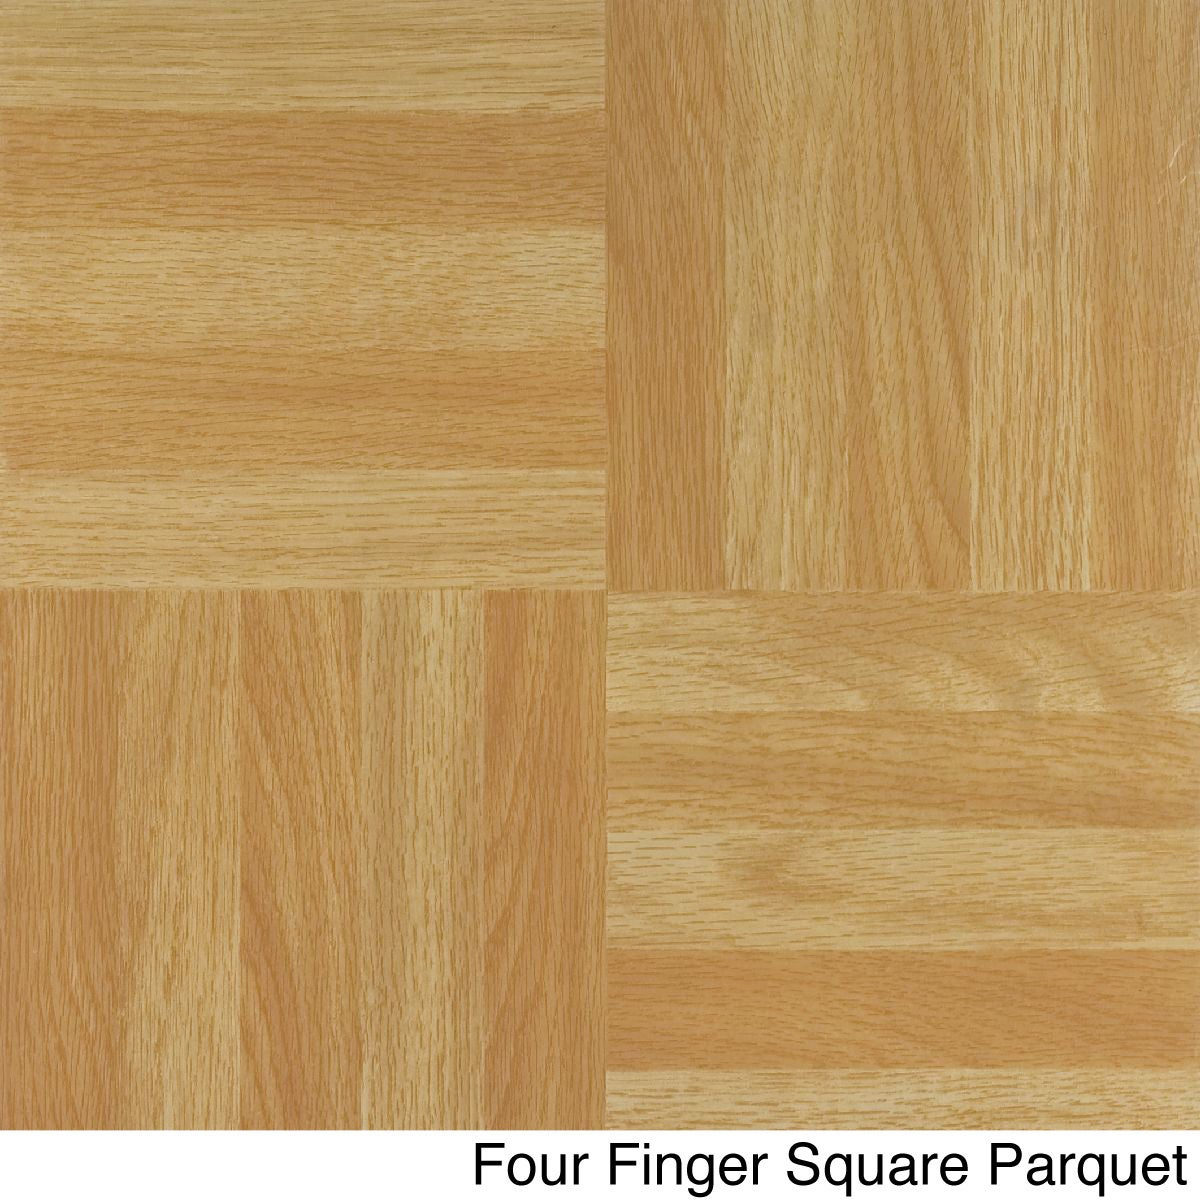 Achim nexus wood look 12x12 self adhesive vinyl floor tile 20 achim nexus wood look 12x12 self adhesive vinyl floor tile 20 tiles20 sq ft free shipping on orders over 45 overstock 15774759 dailygadgetfo Gallery